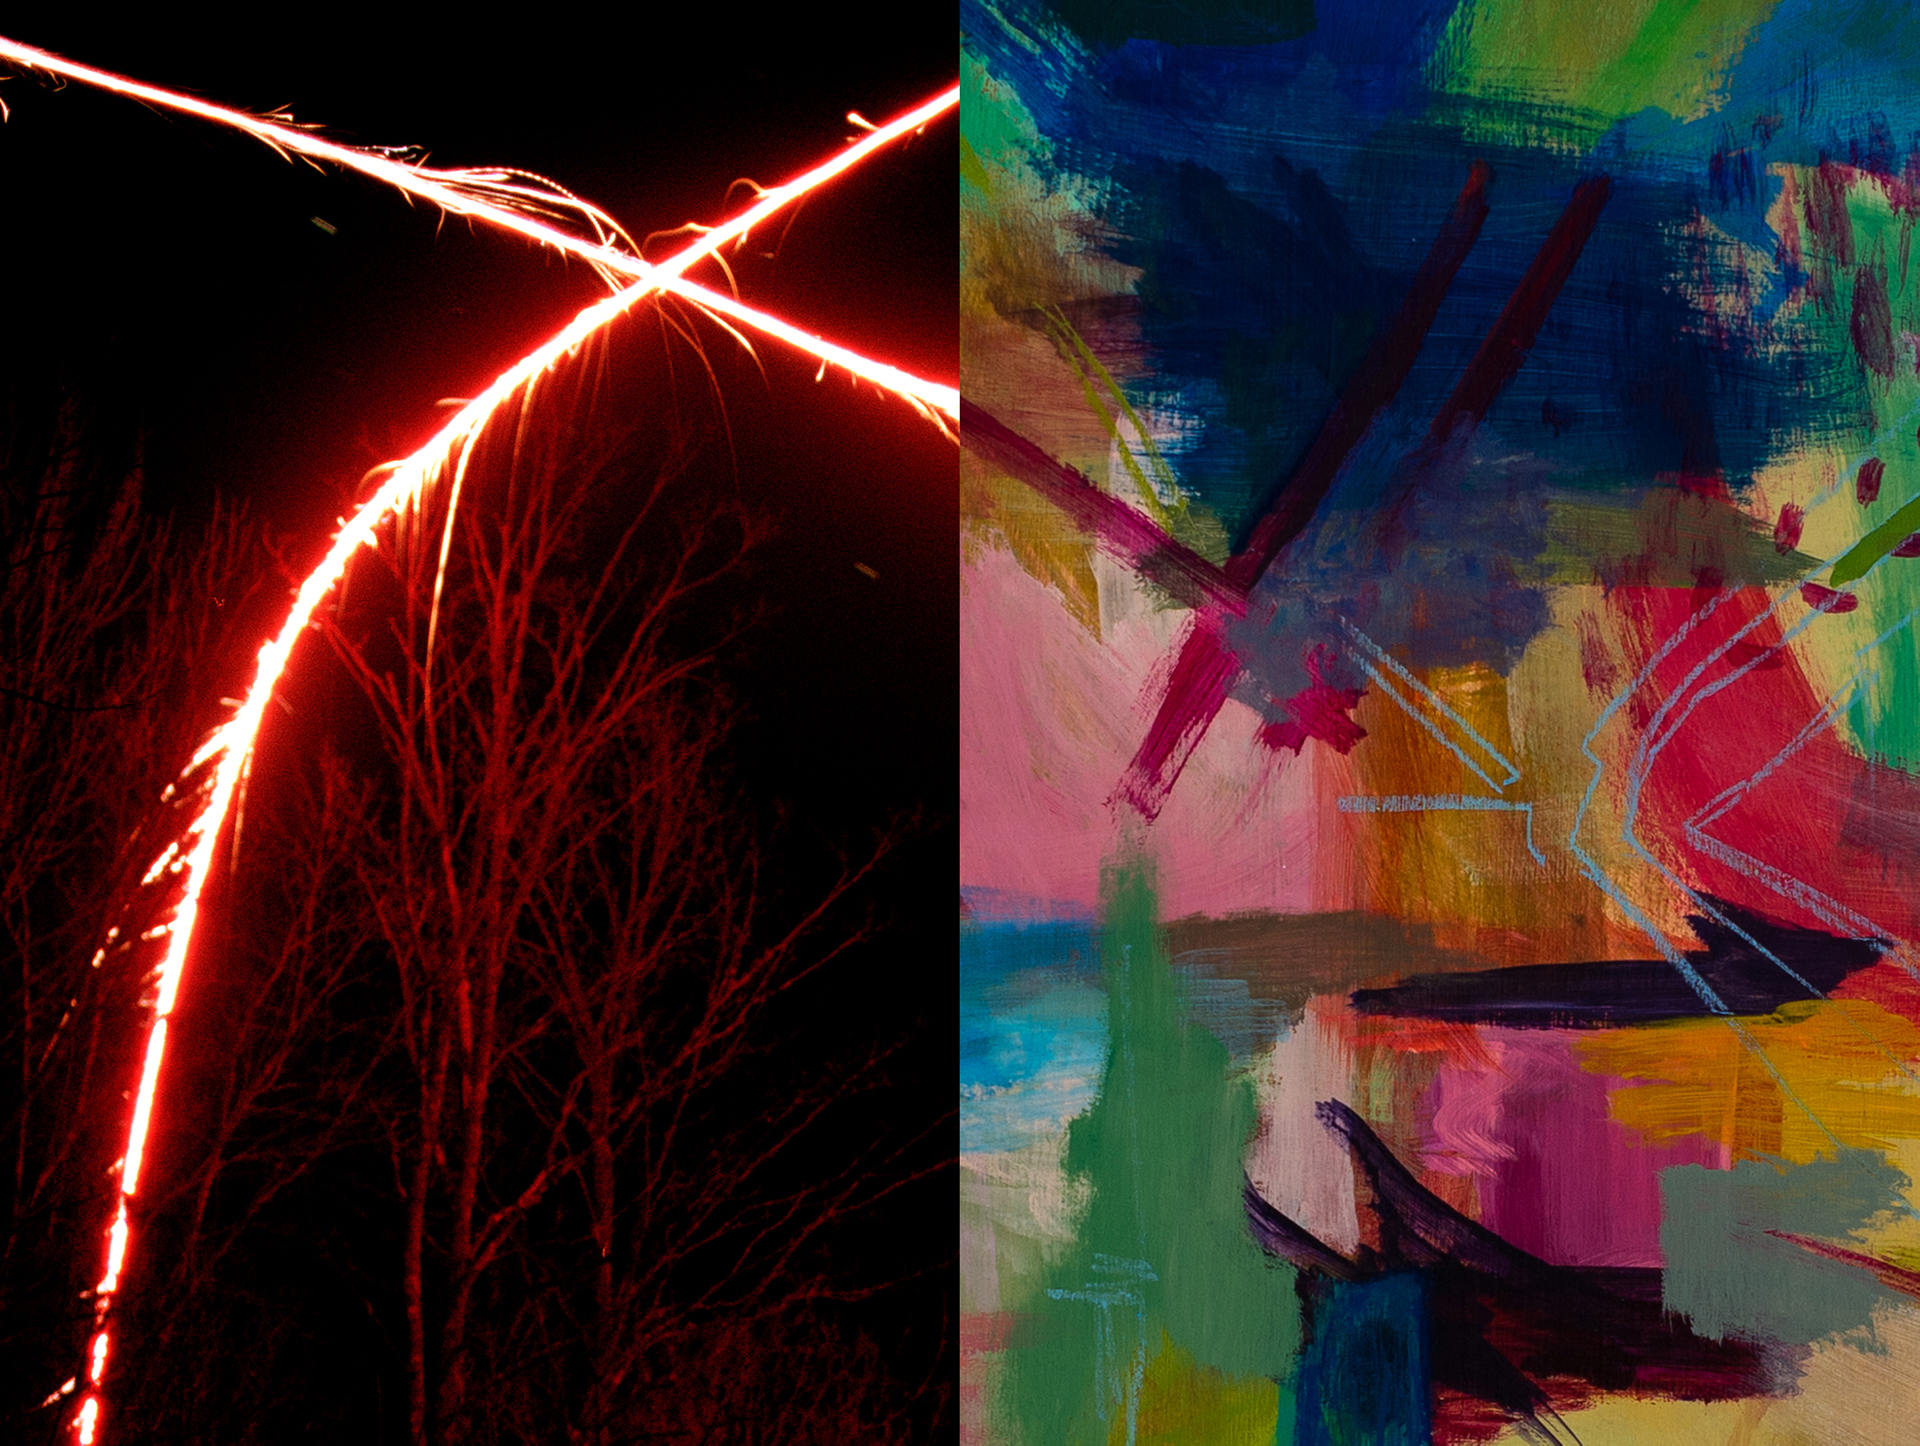 Left: Harlan Crichton (MFA Photography), every fall she killlsa deer with her car (detail), 2019, archival inkjet print, 24x30 in. Right: Tara Hayes (MFA 2D), T Square, 2019, acrylic and pastel on canvas, 24x24 in.